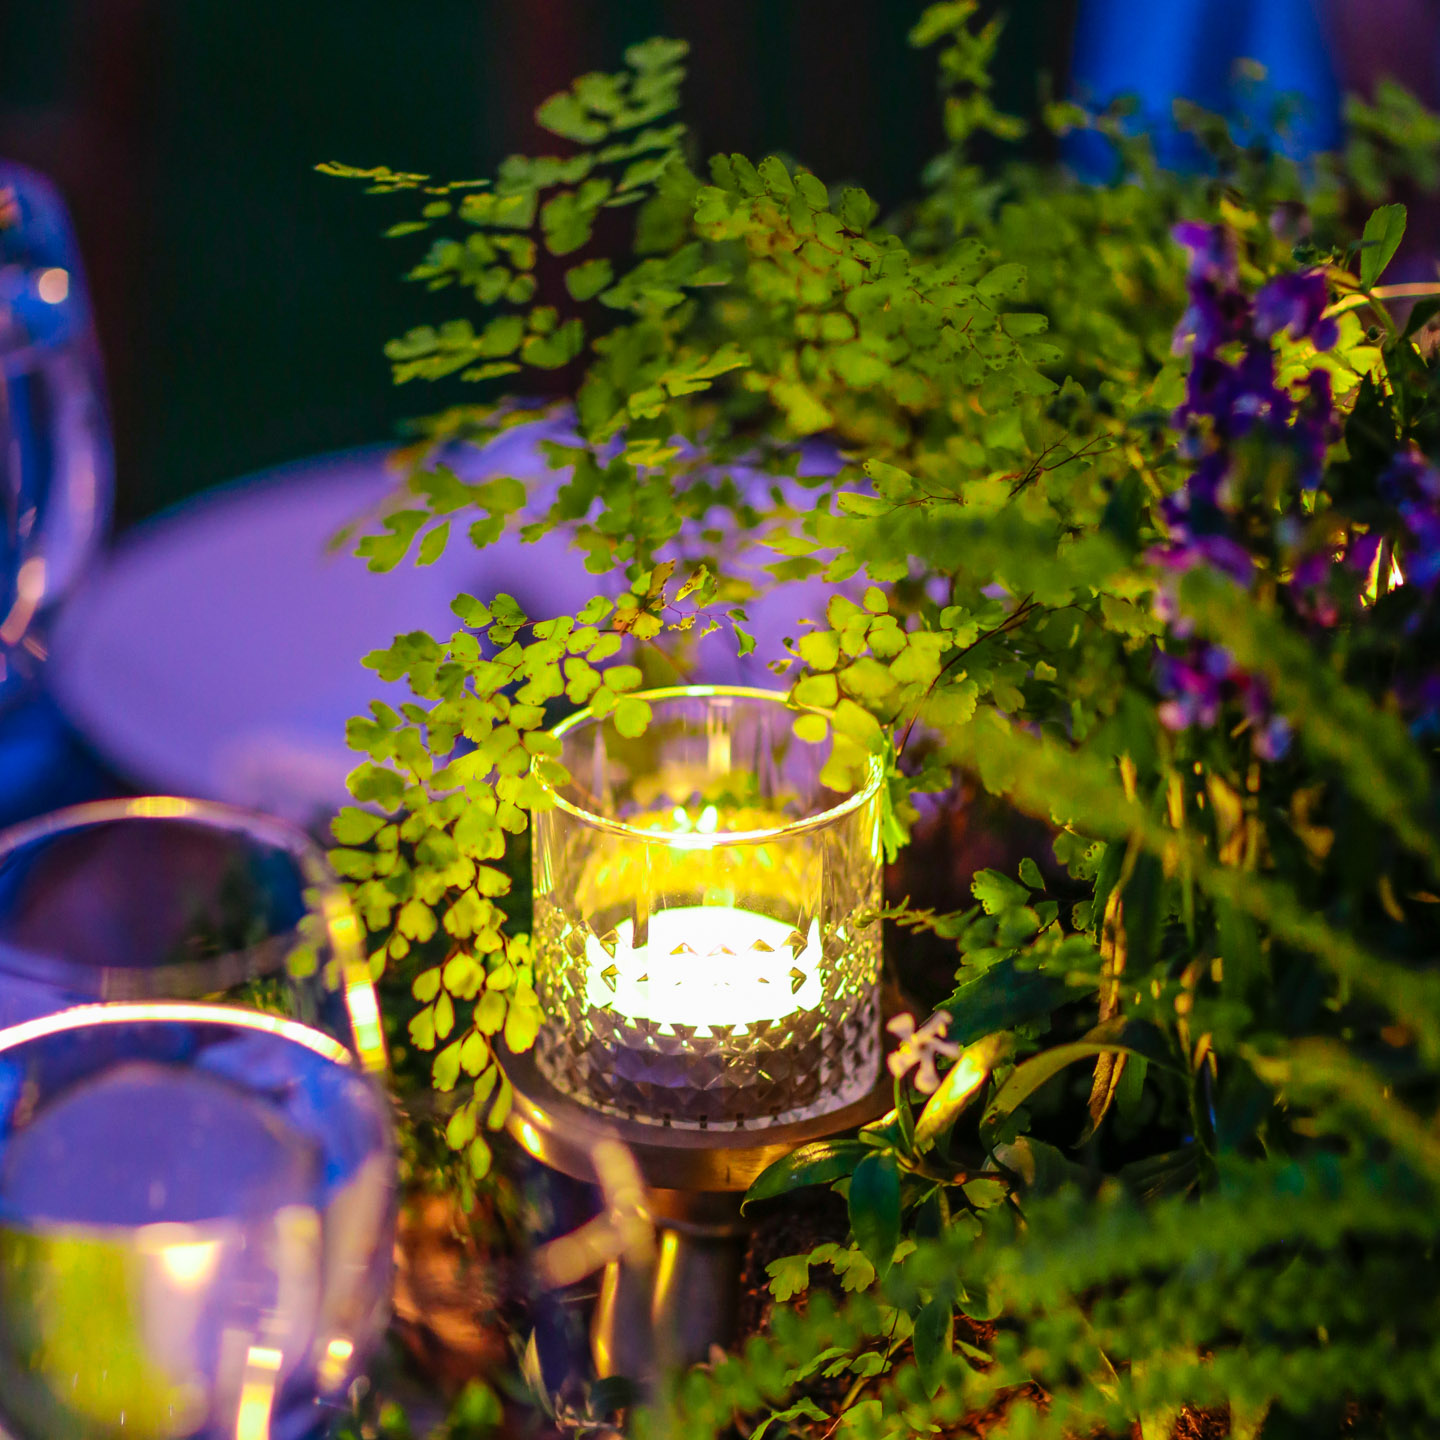 2eric_striffler_photography_event_party-9.jpg